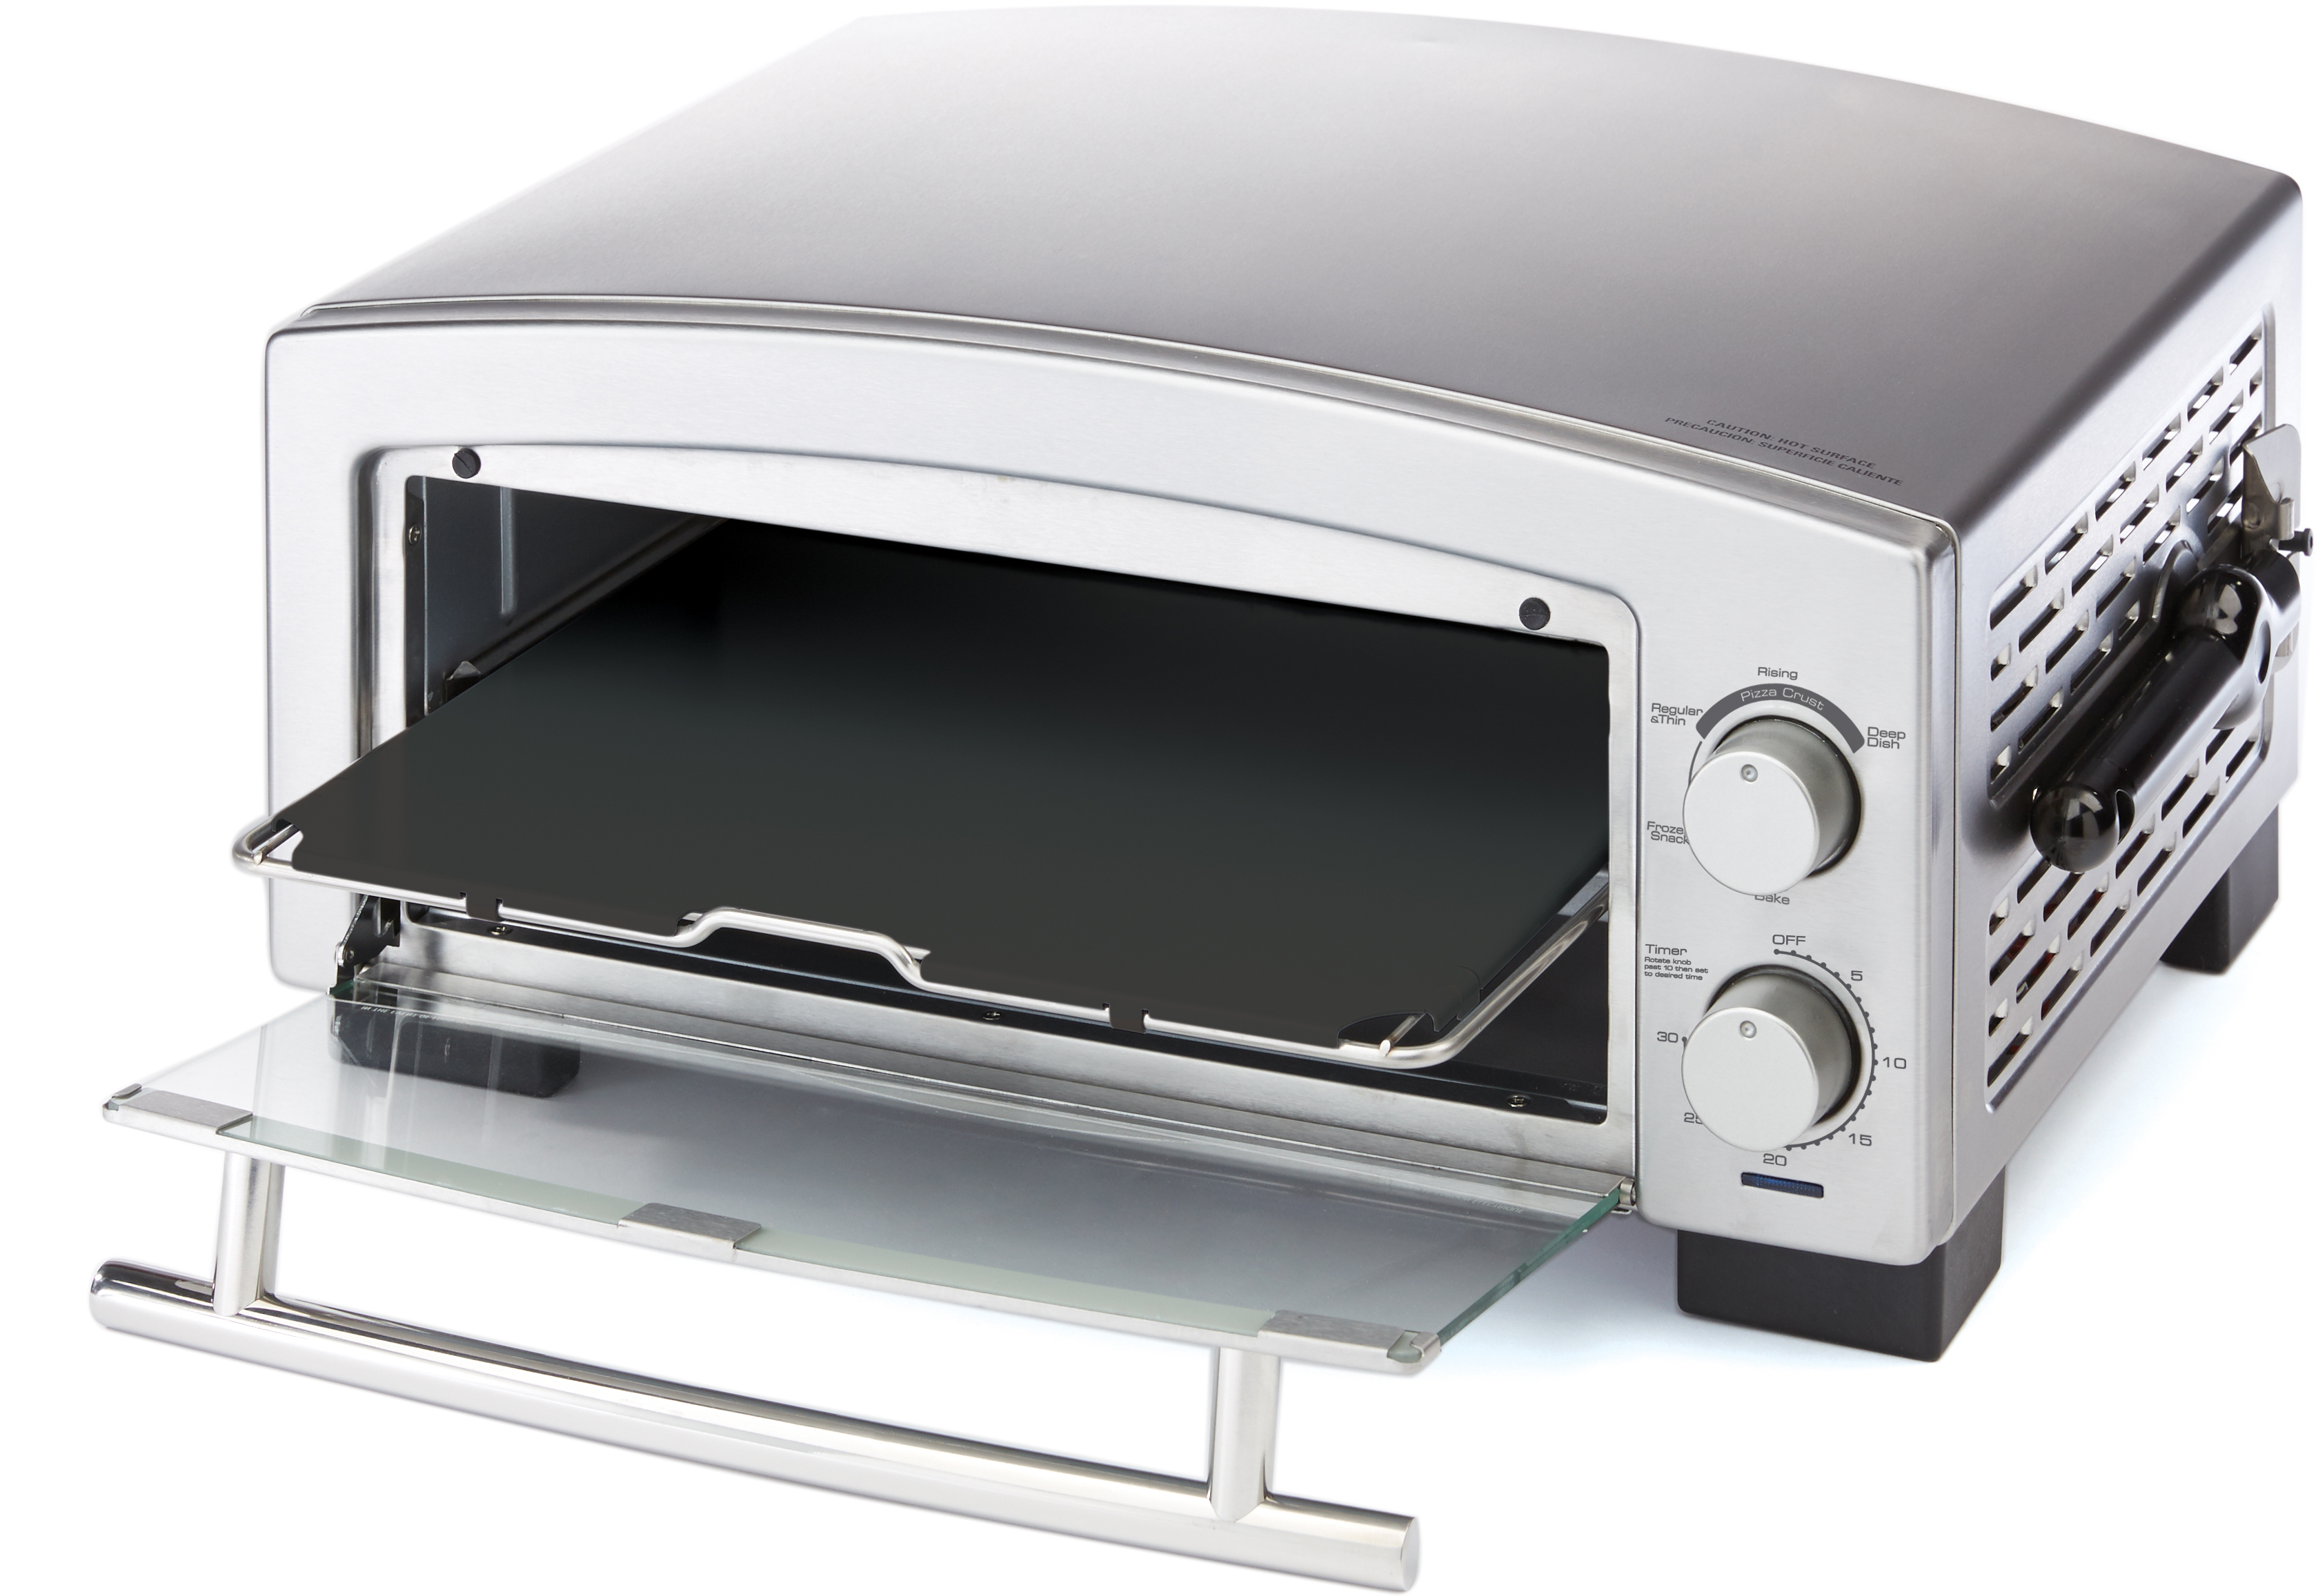 Spectrum Brands To Debut The BLACK+DECKER™ 5 Minute* Pizza Oven And Snack  Maker At 2015 International Home + Housewares Show | Business Wire